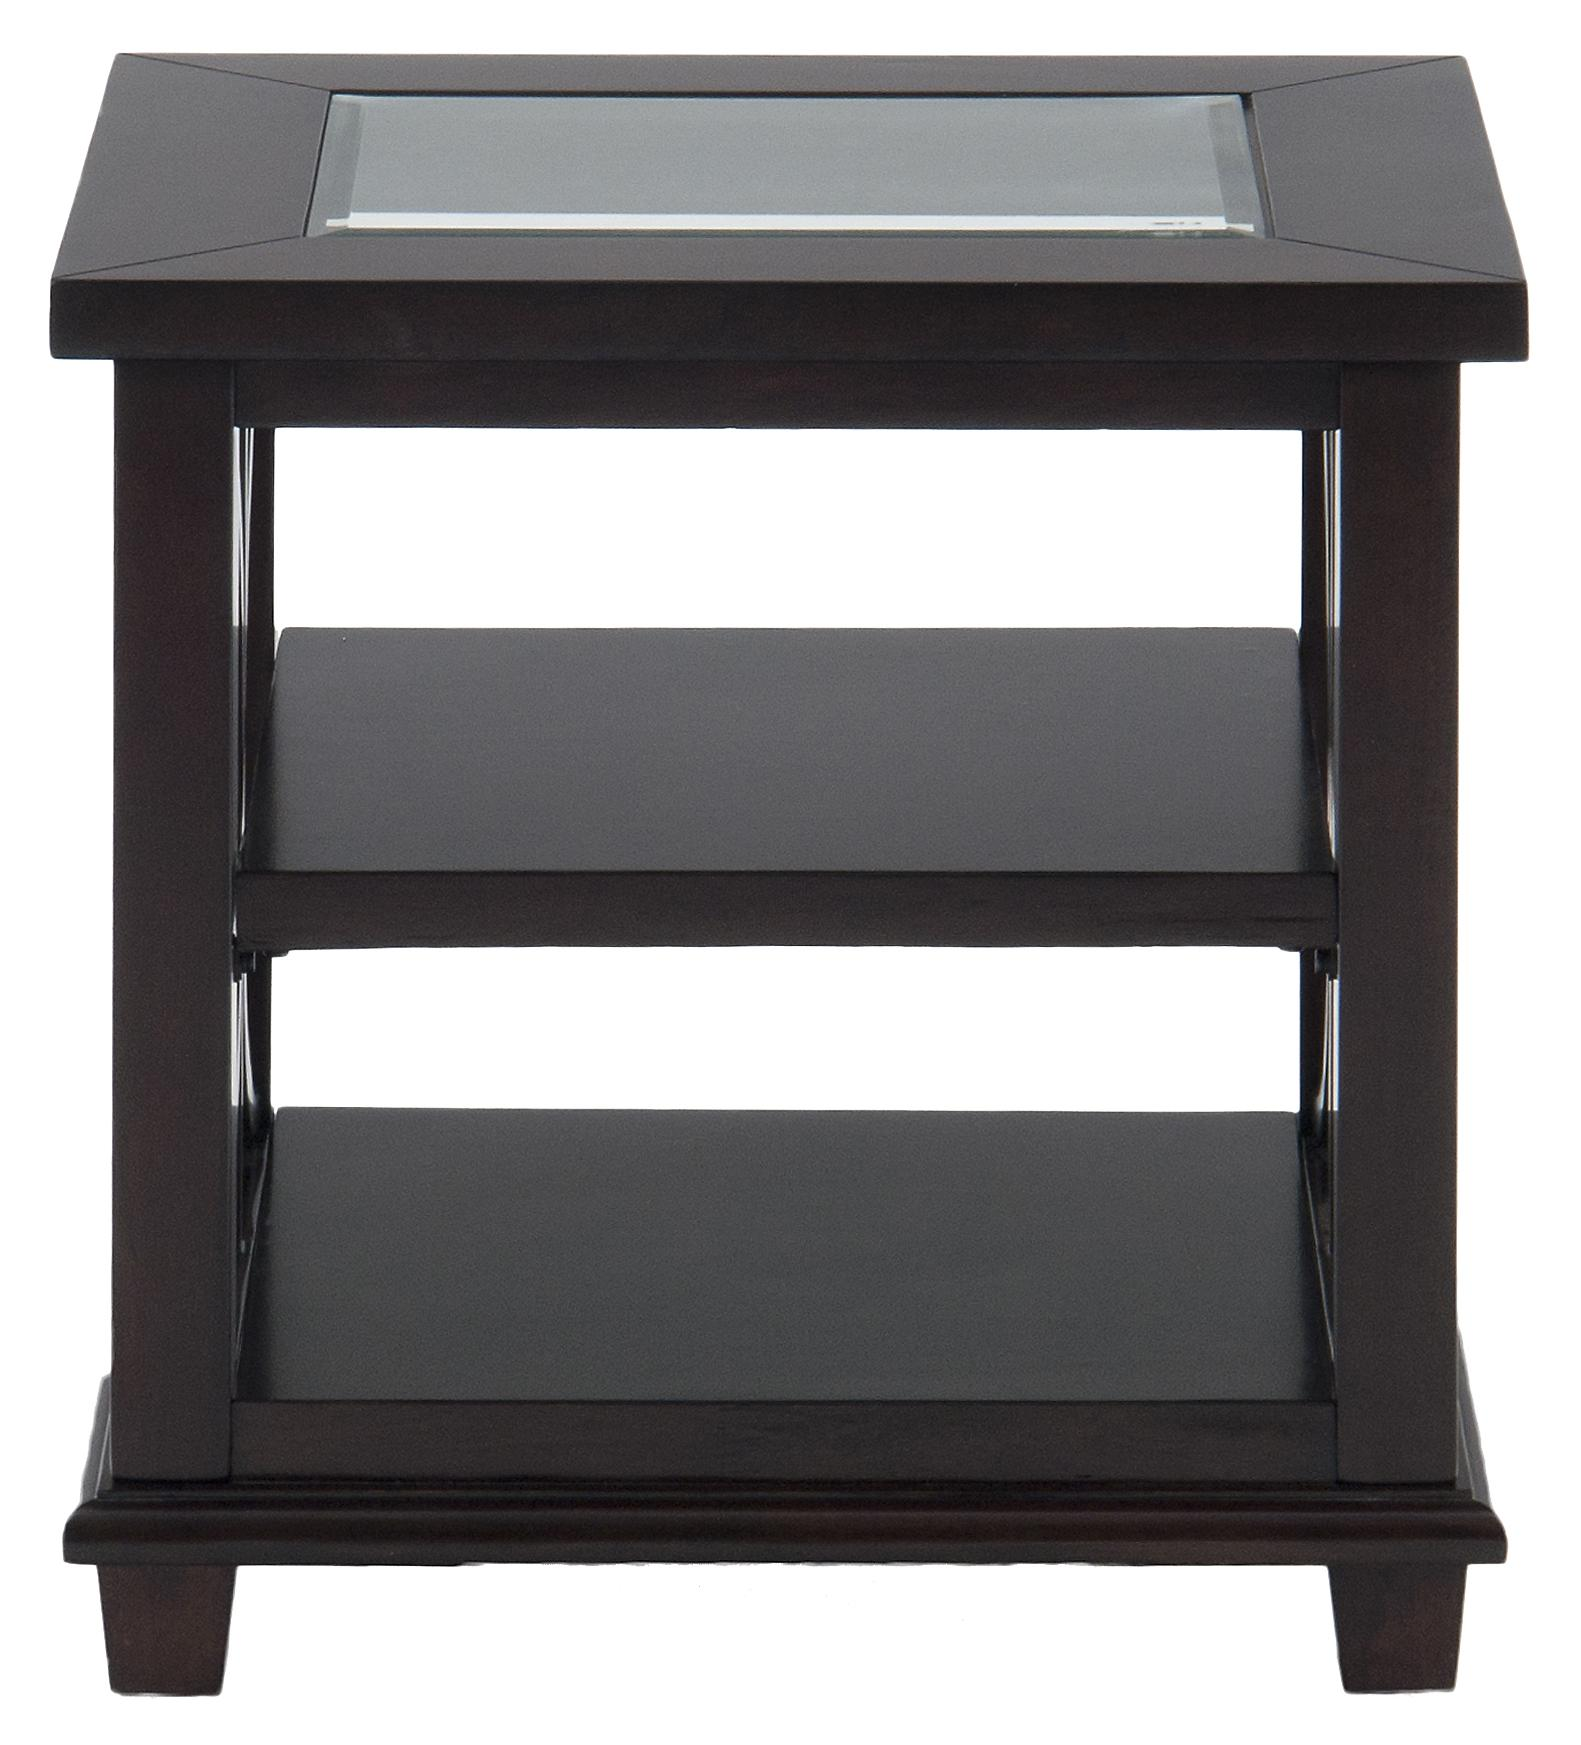 Jofran Panama Brown End Table w/ Glass Top - Item Number: 966-3